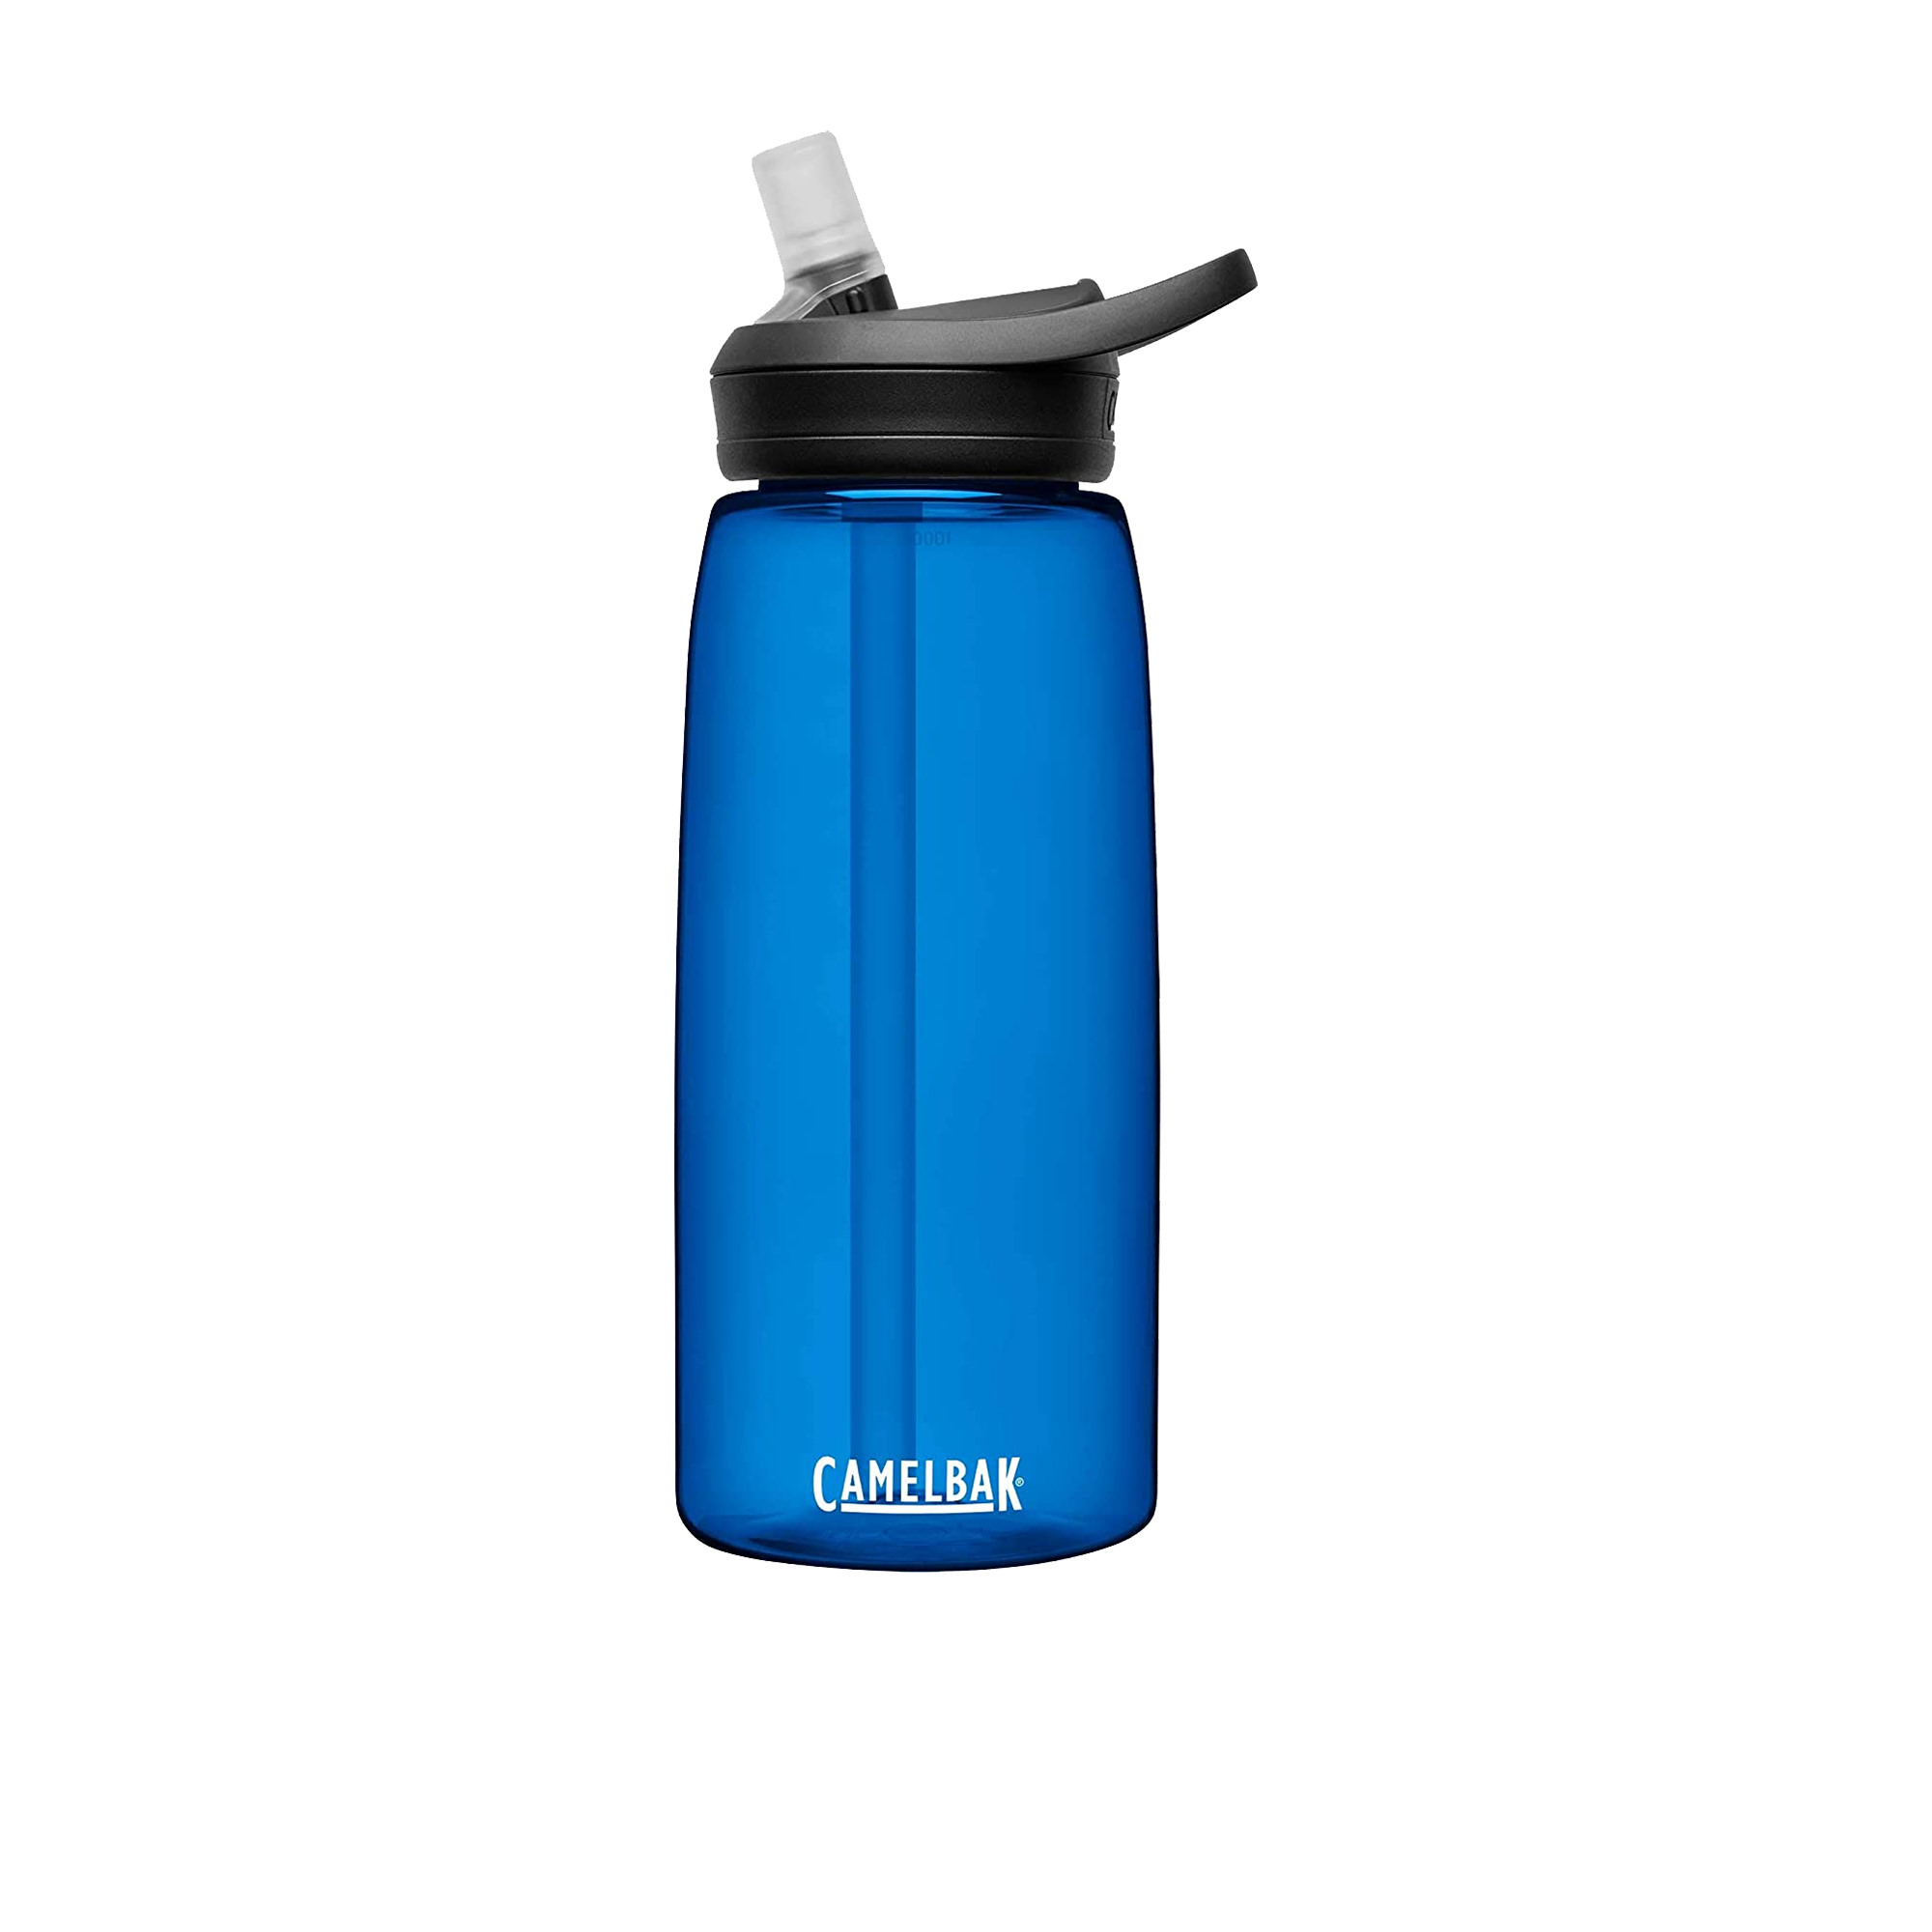 Camelbak Eddy+ Drink Bottle 1L Oxford